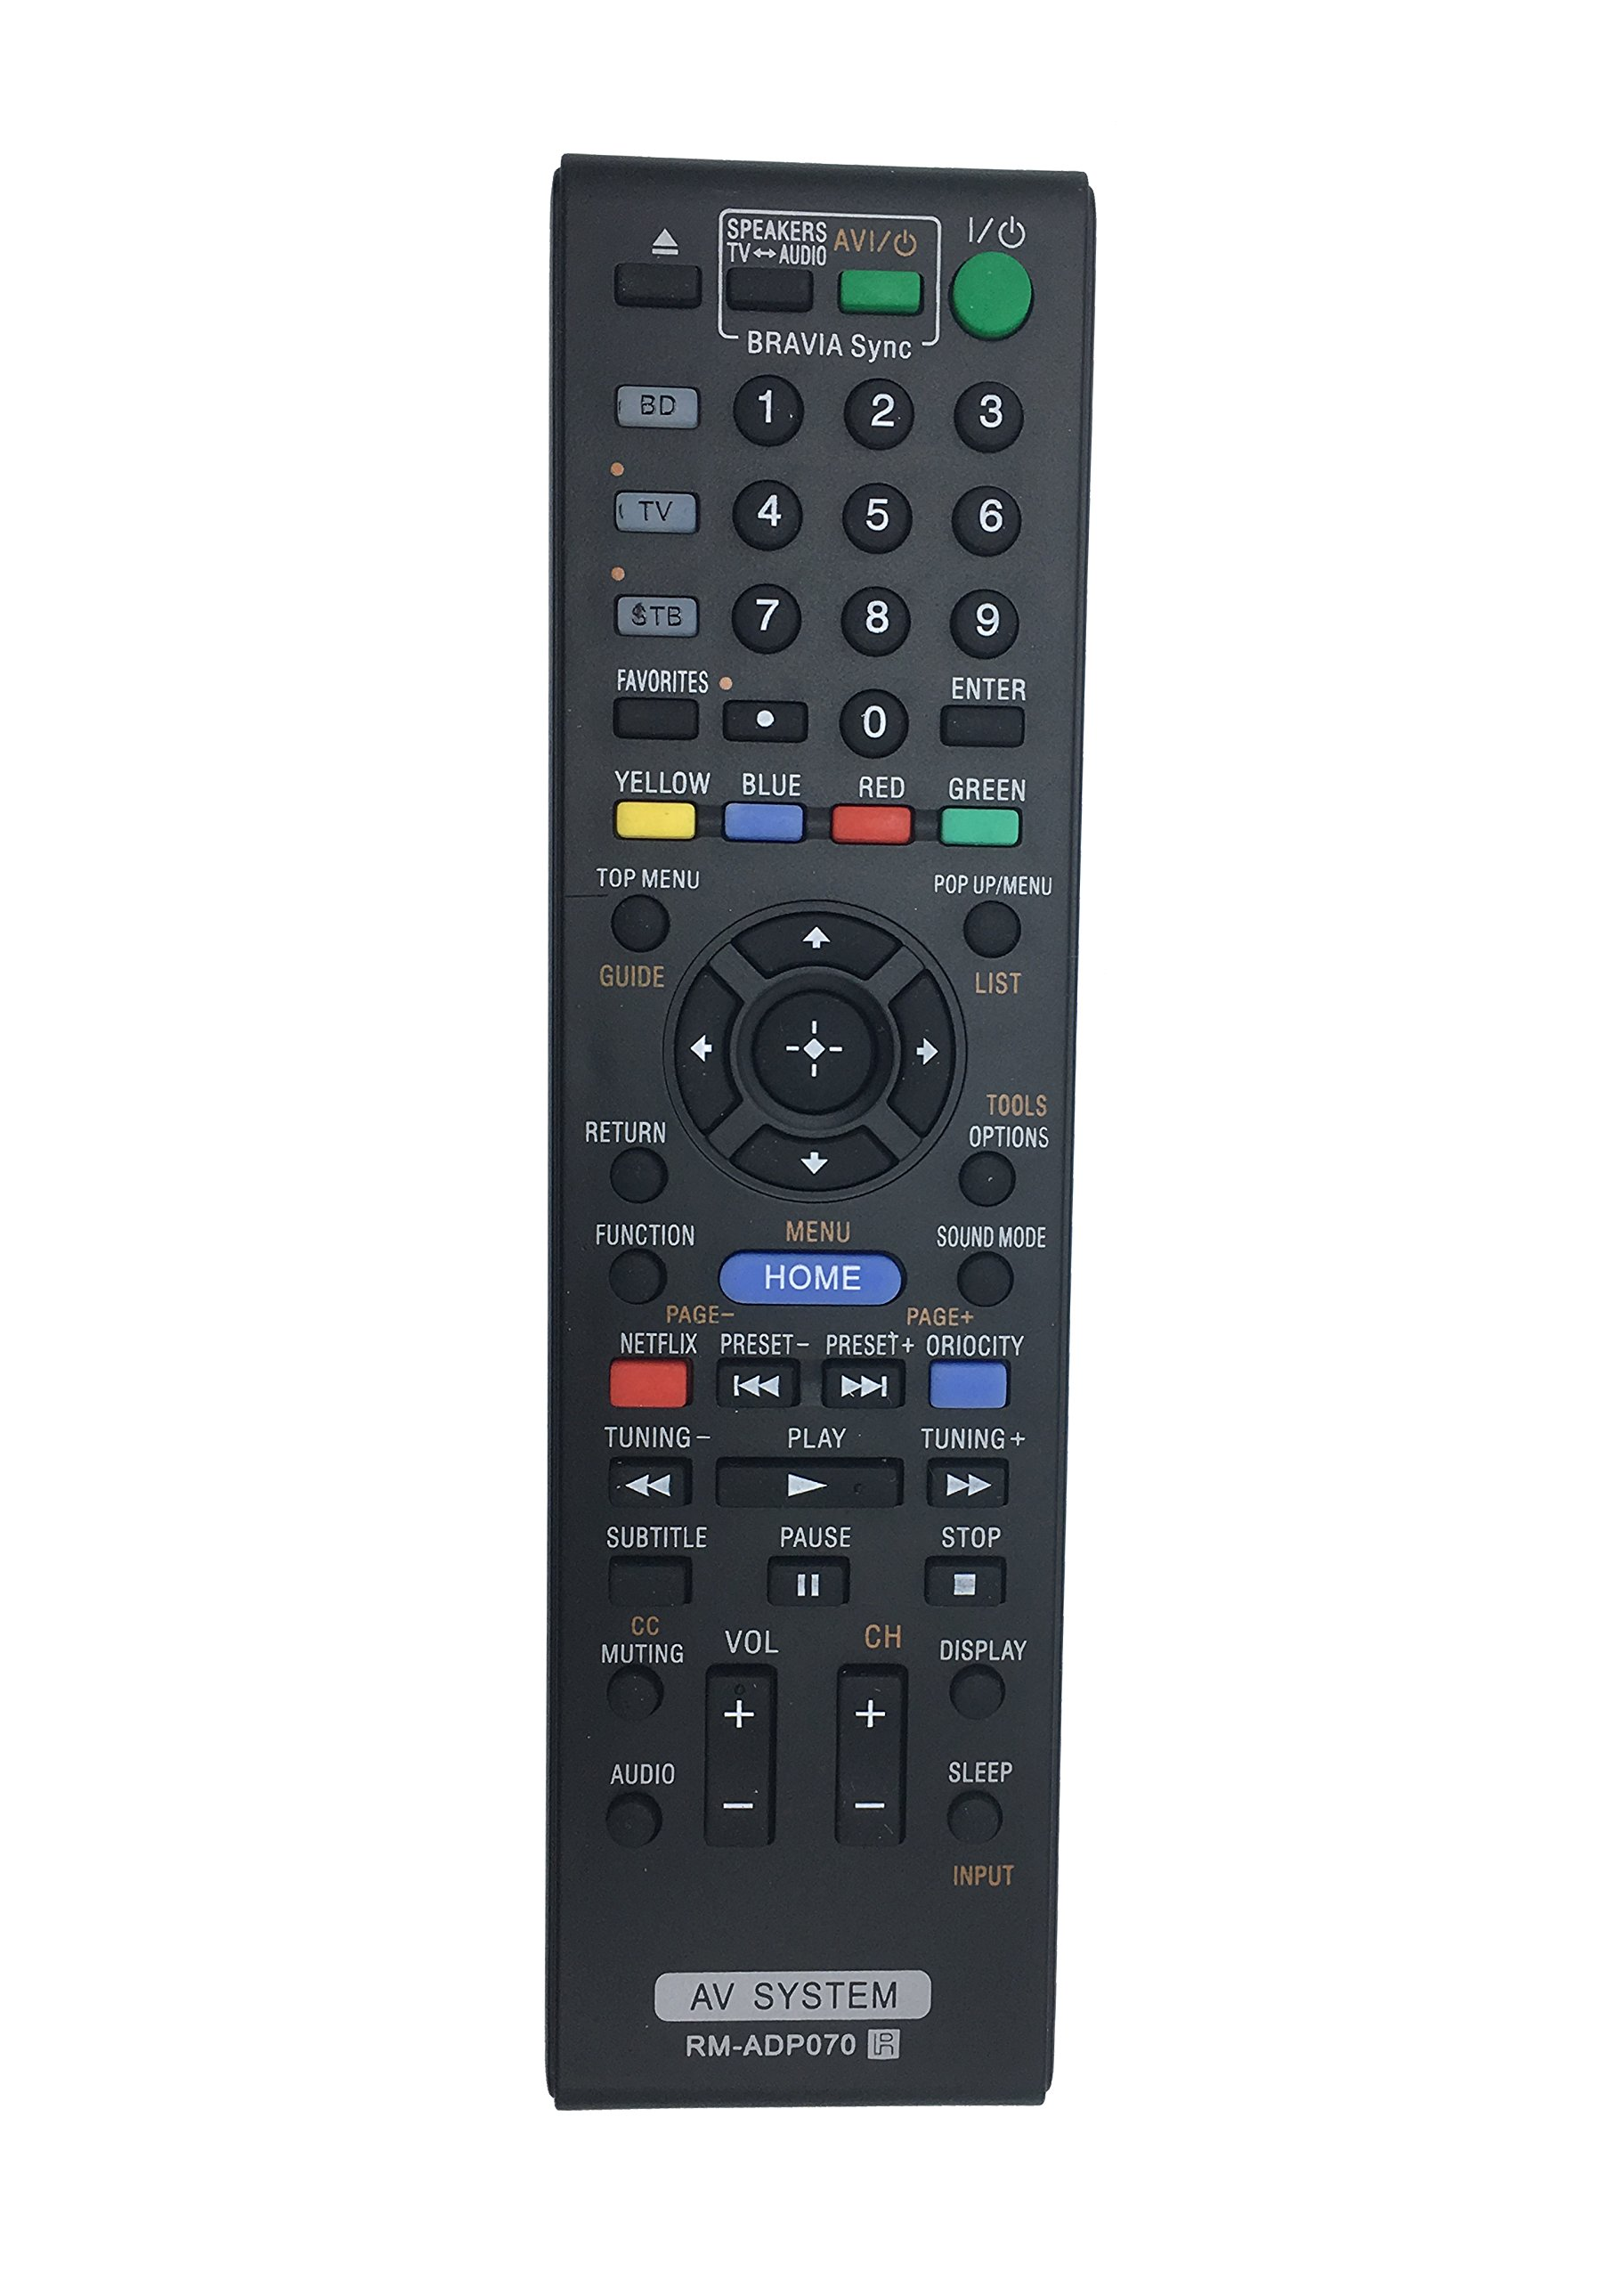 New RM-ADP070 Replaced Remote fit for Sony BDV-E780W RM-ADP059 HBD-E280 BDV-E980W HBD-E580 HBDE280 BDVE980W HBDE580 BDVE780W AV System Home Theater System